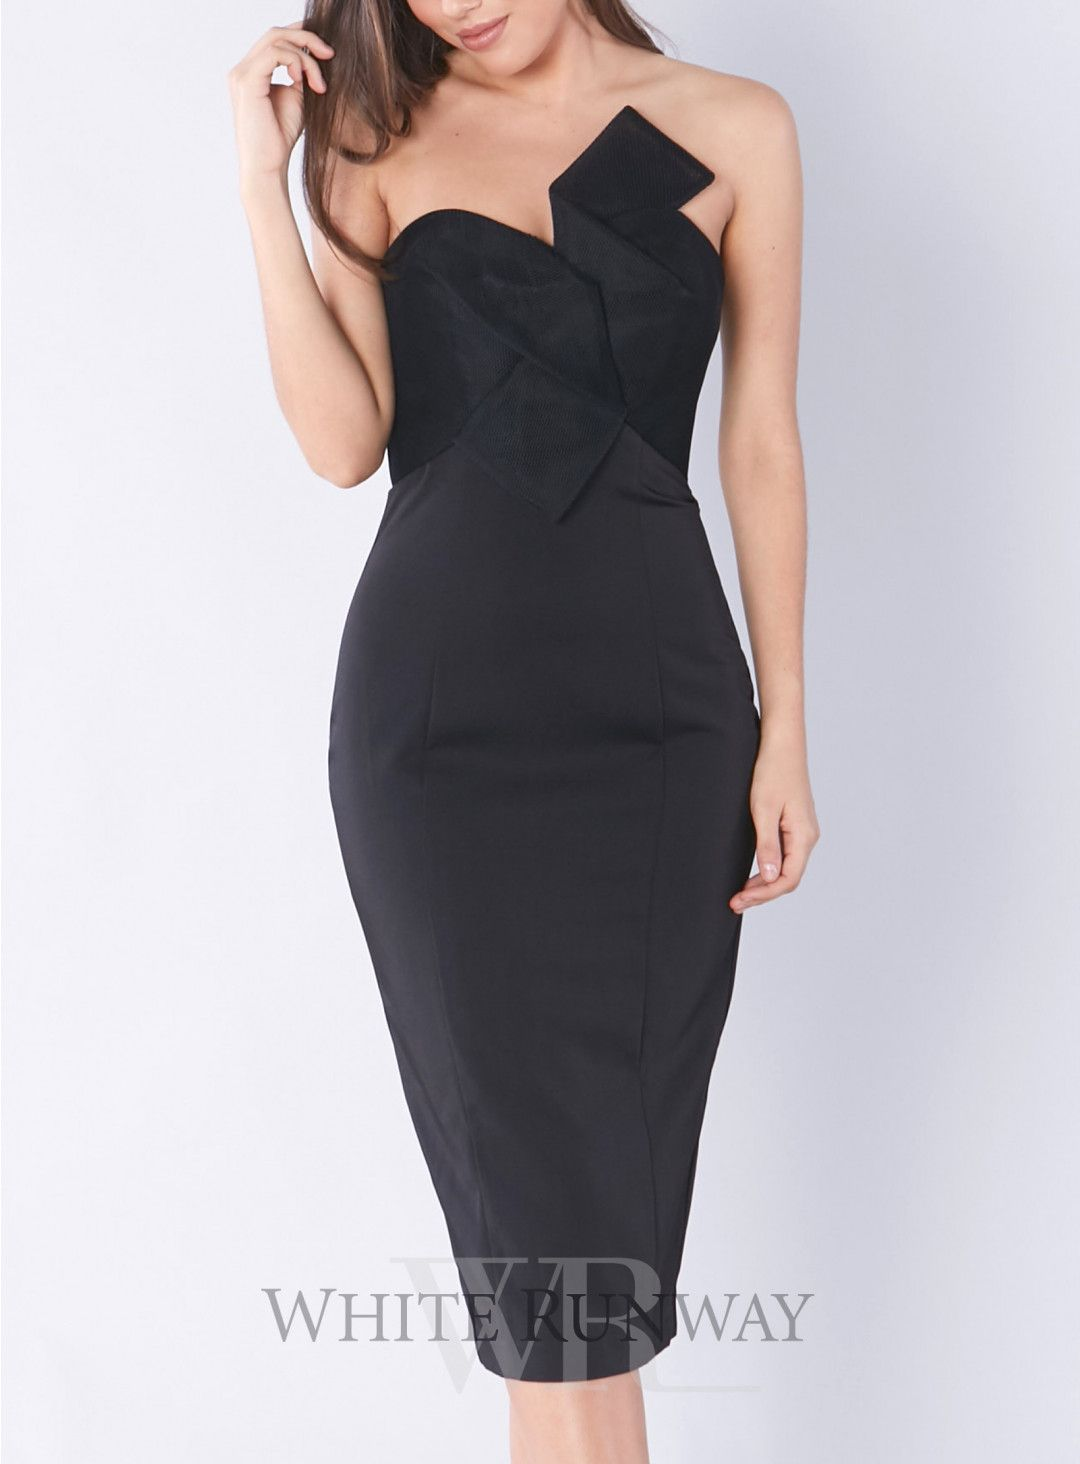 Evaleena Cocktail Dress A Stunning Lbd By Jadore A Fitted Strapless Style Featuring Mesh Detailing On The Bust Dresses Jadore Dress Little Black Dress [ 1464 x 1080 Pixel ]